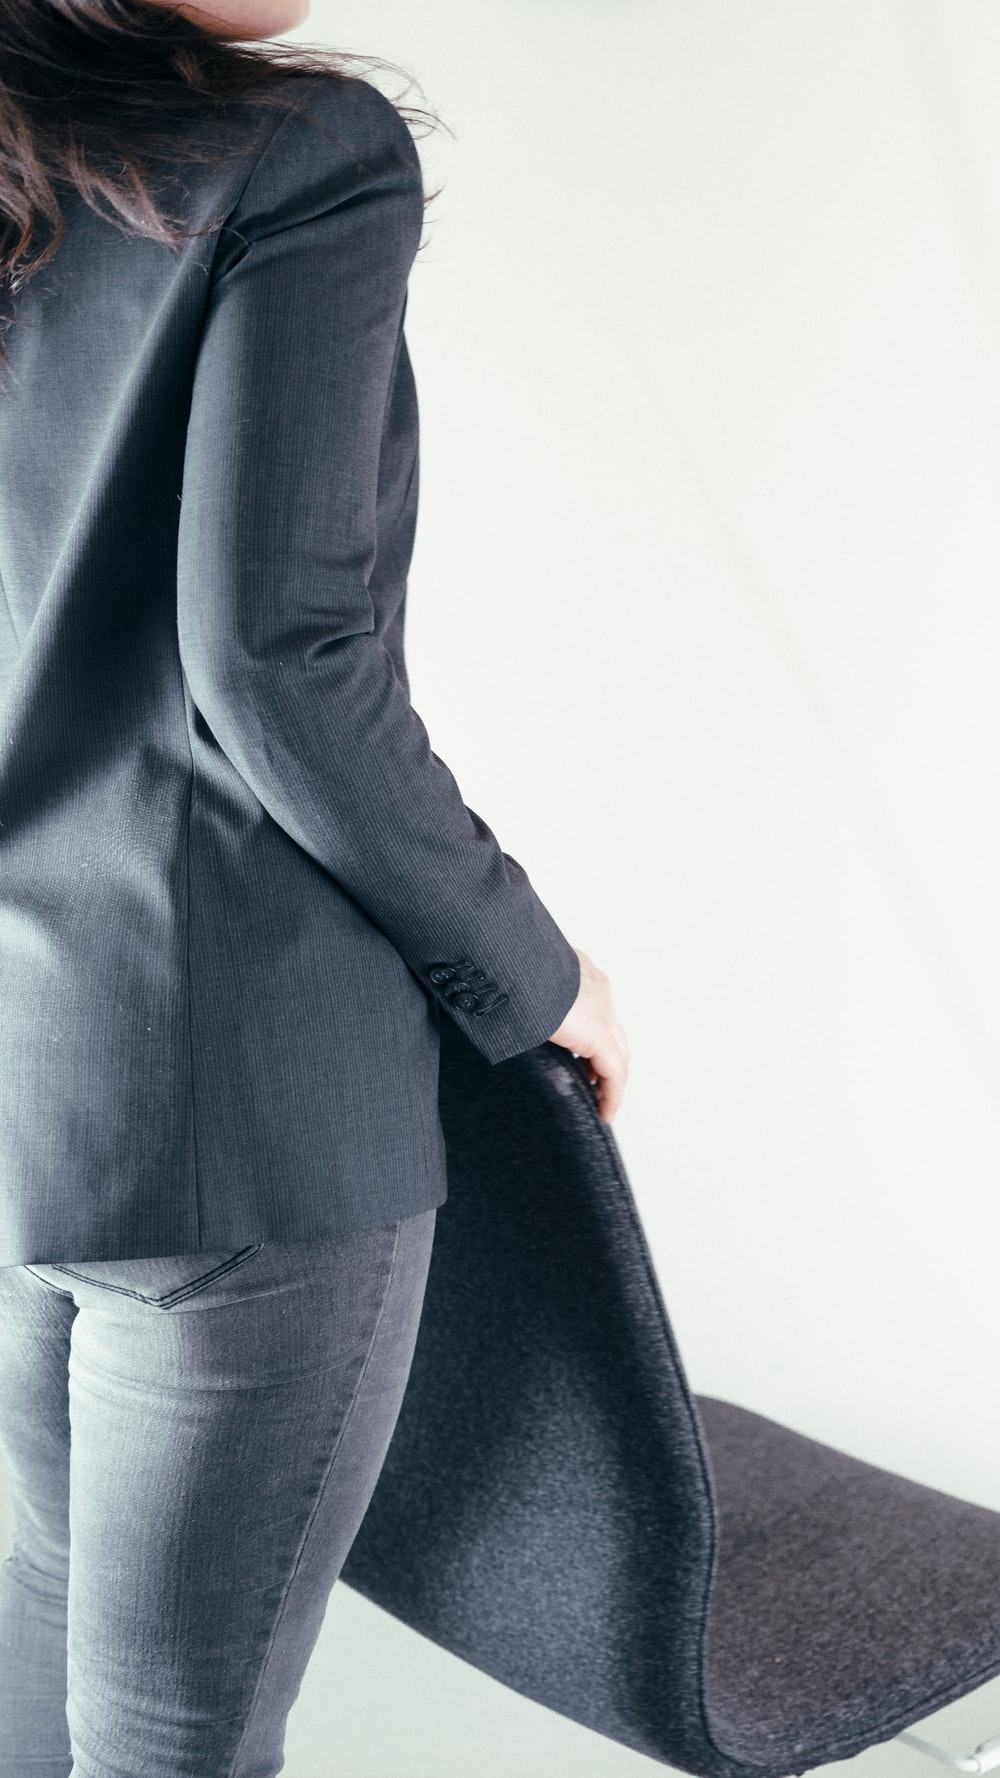 person in gray blazer and white dress pants